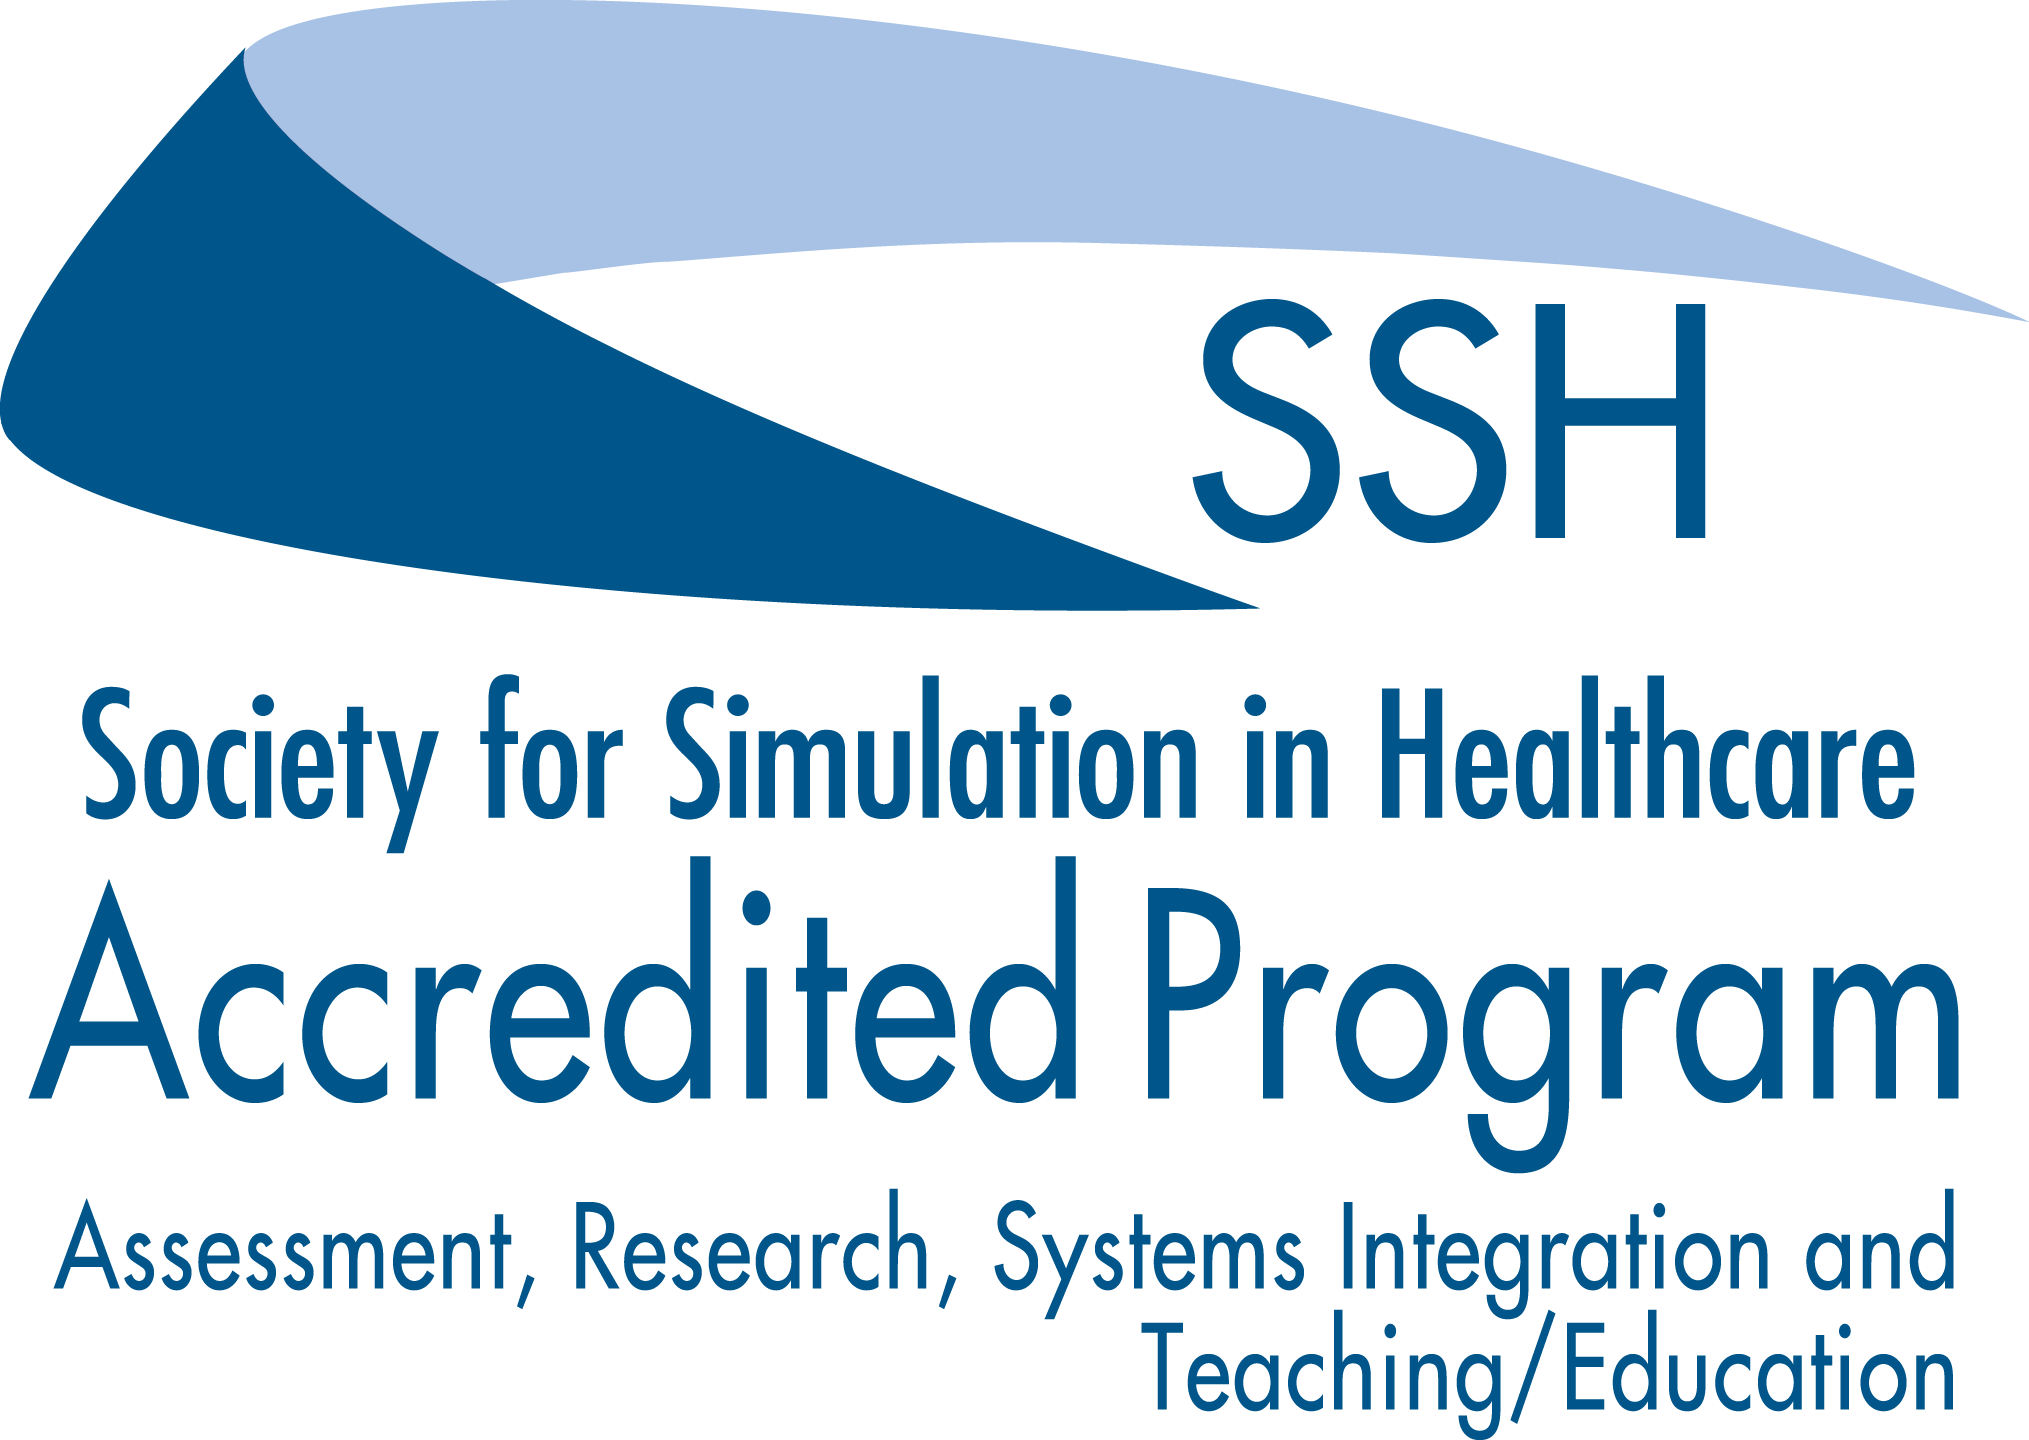 ssh-accreditation-logo.png